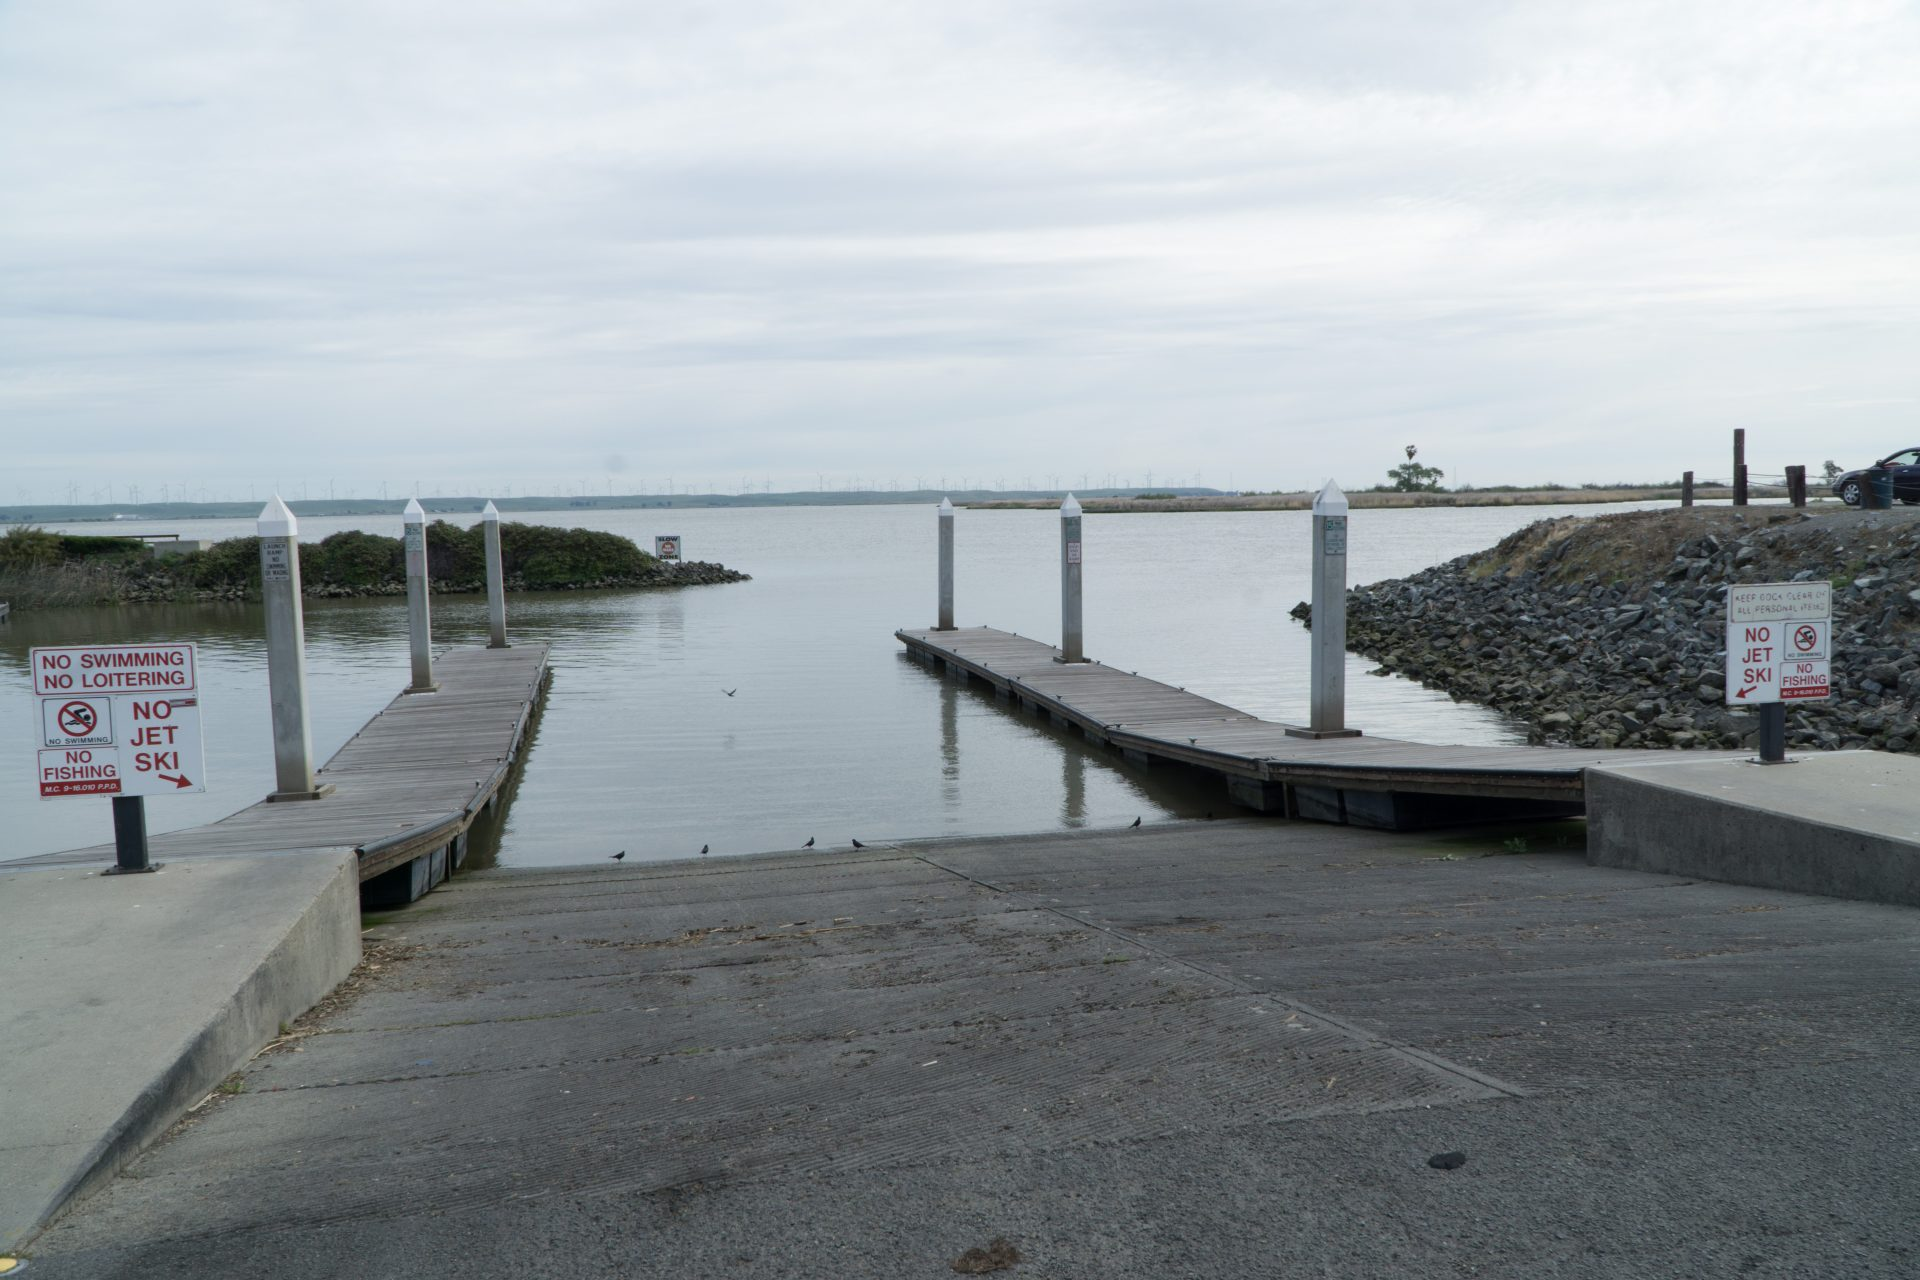 large boat launch descends into water